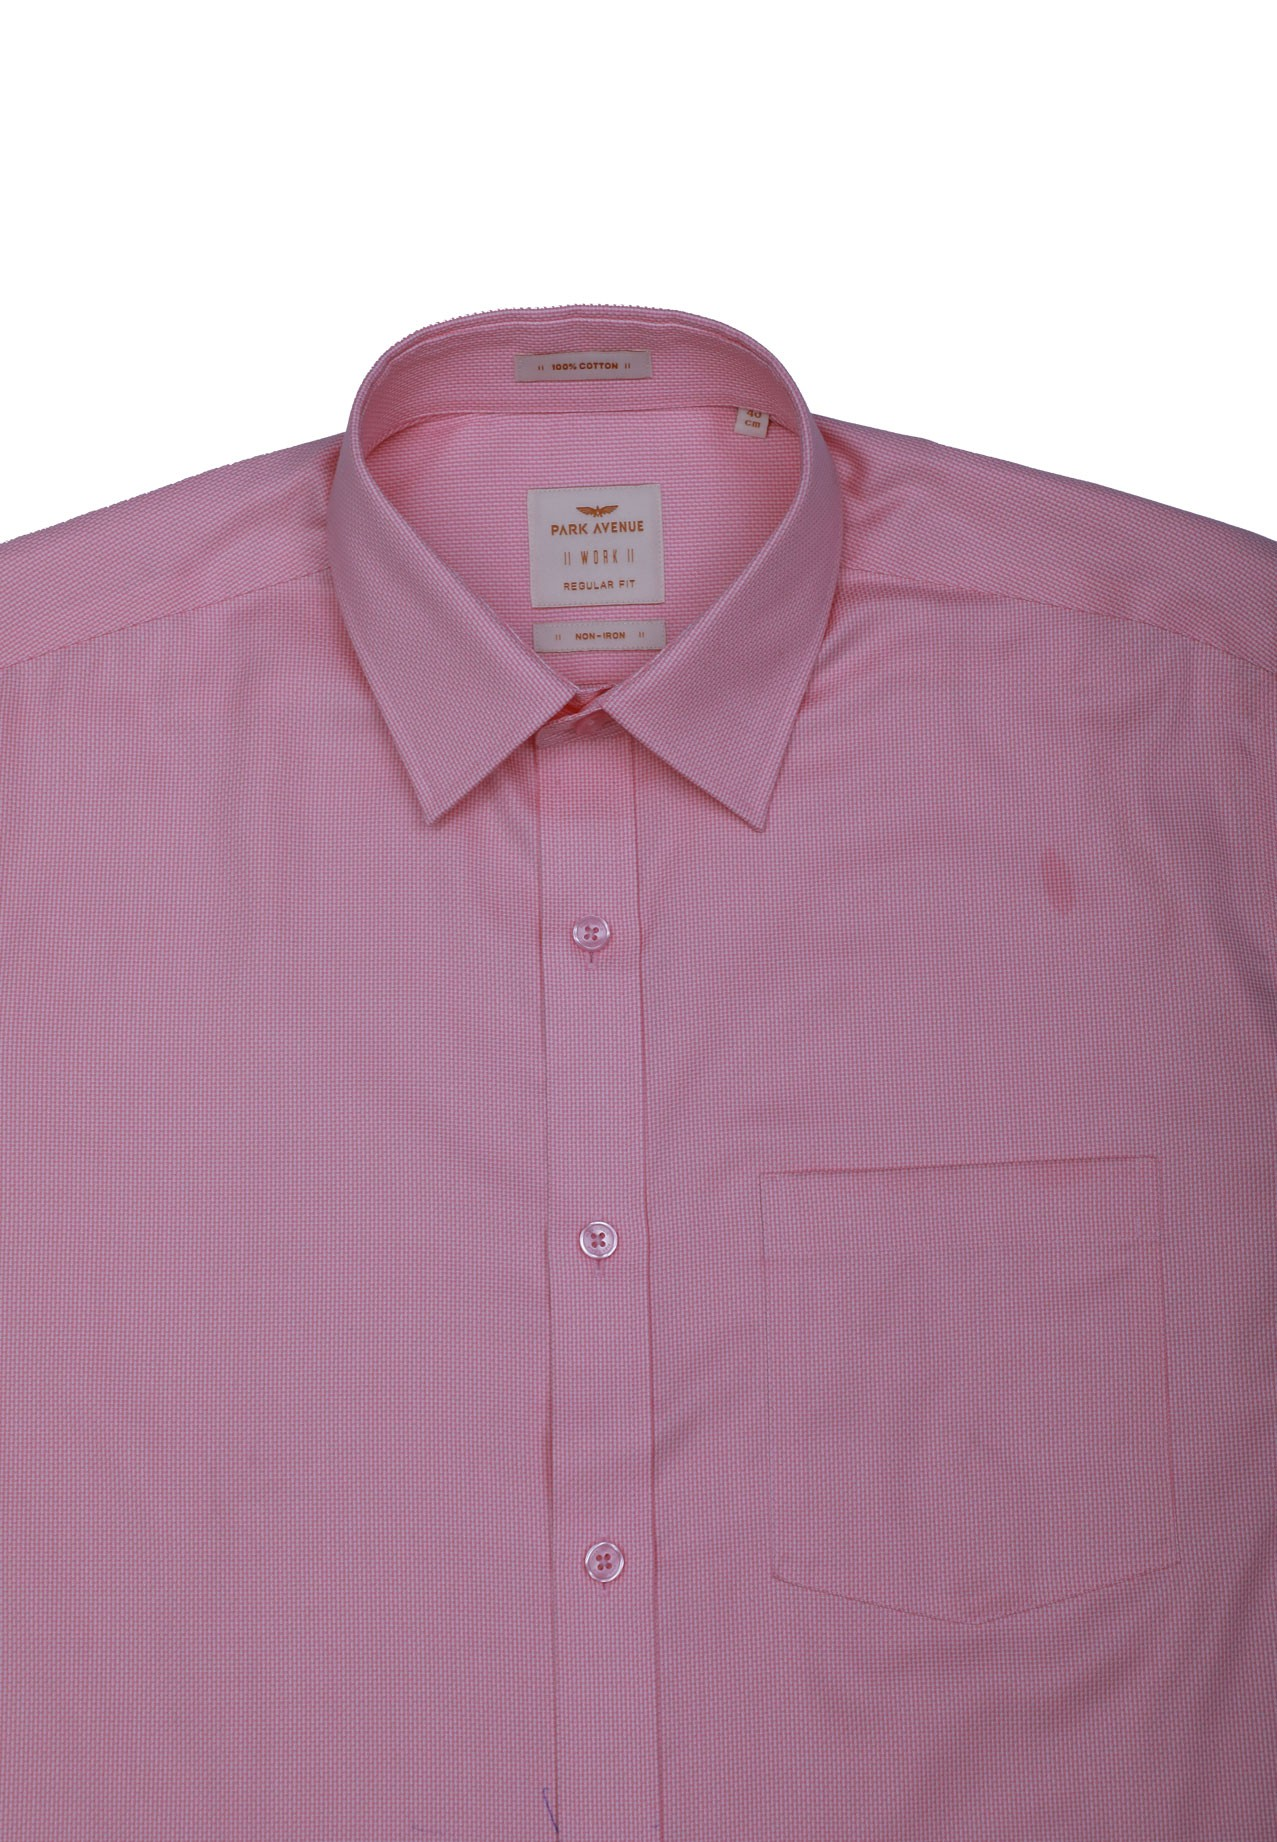 Park Avenue PMSK12169-R4 Mens Shirt